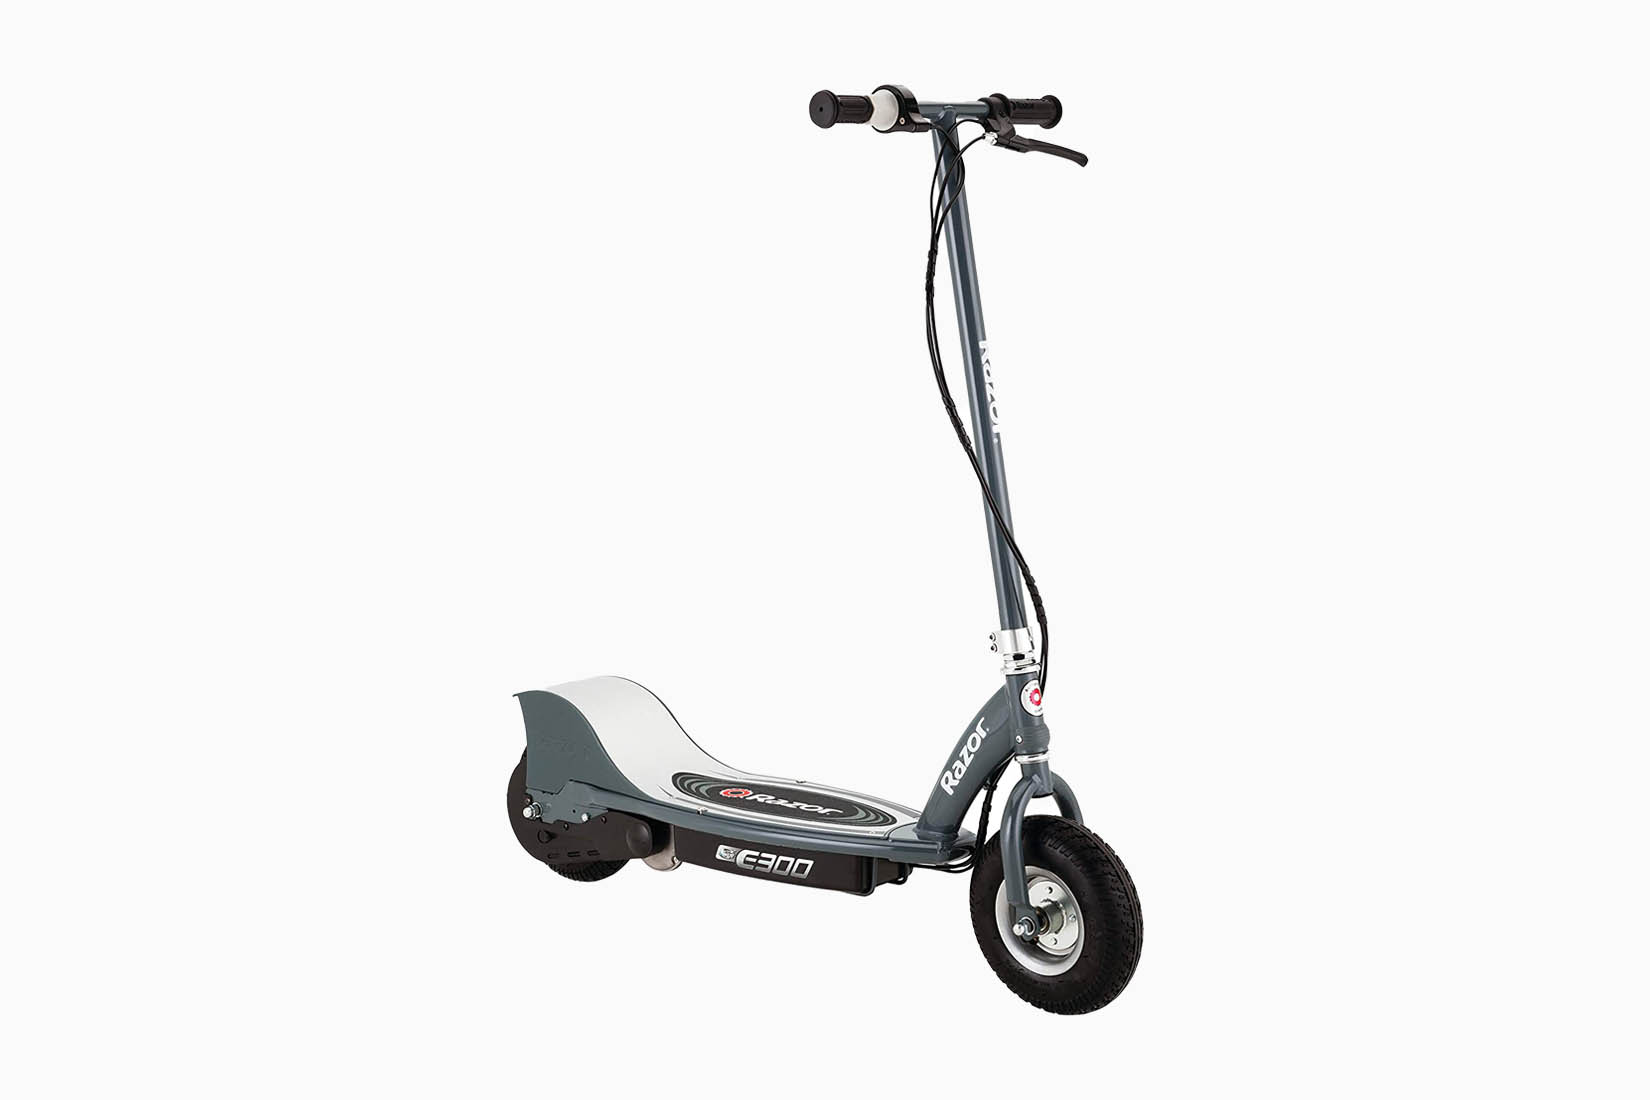 best electric scooter razor E300 review - Luxe Digital